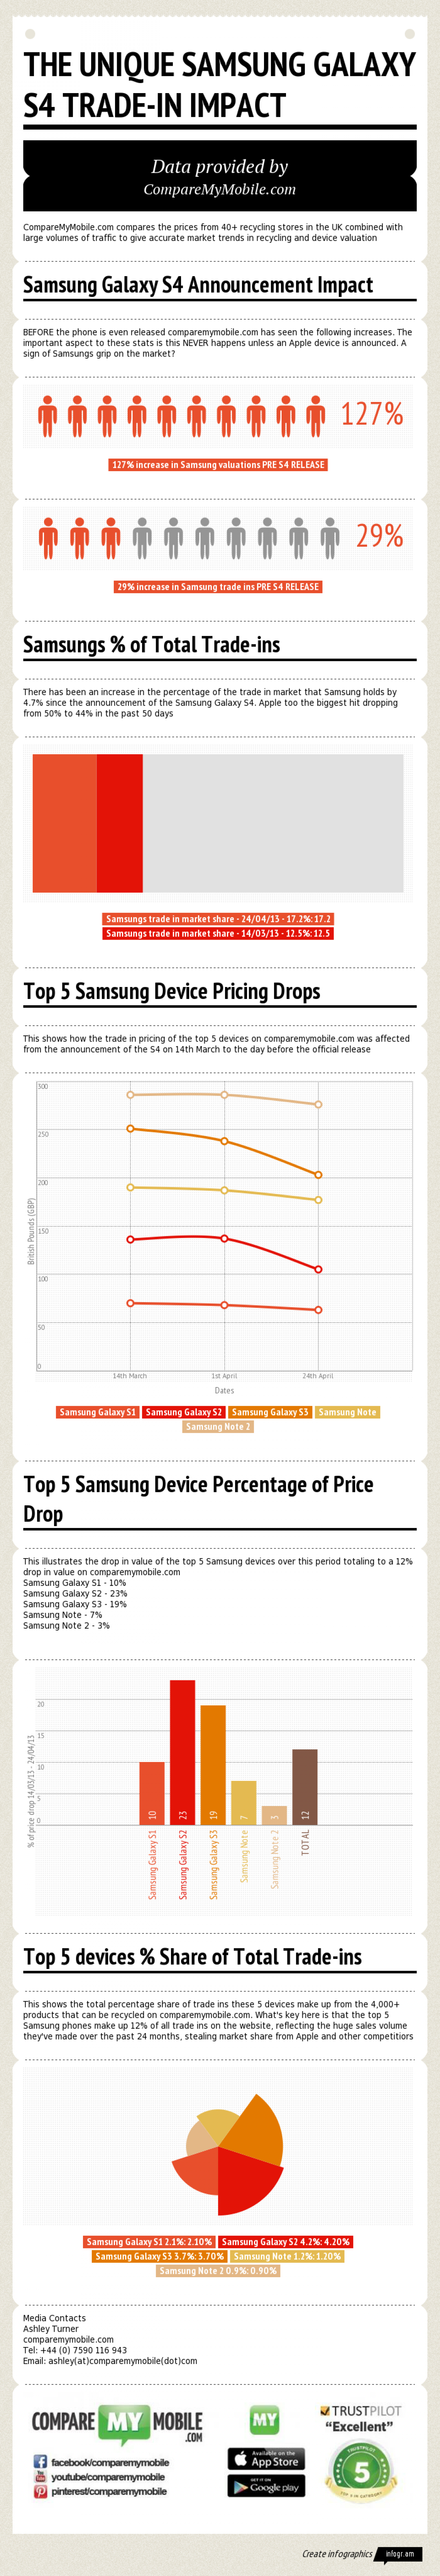 Phone Recycling Data: The Unique Samsung Galaxy S4 Trade-in Impact Infographic